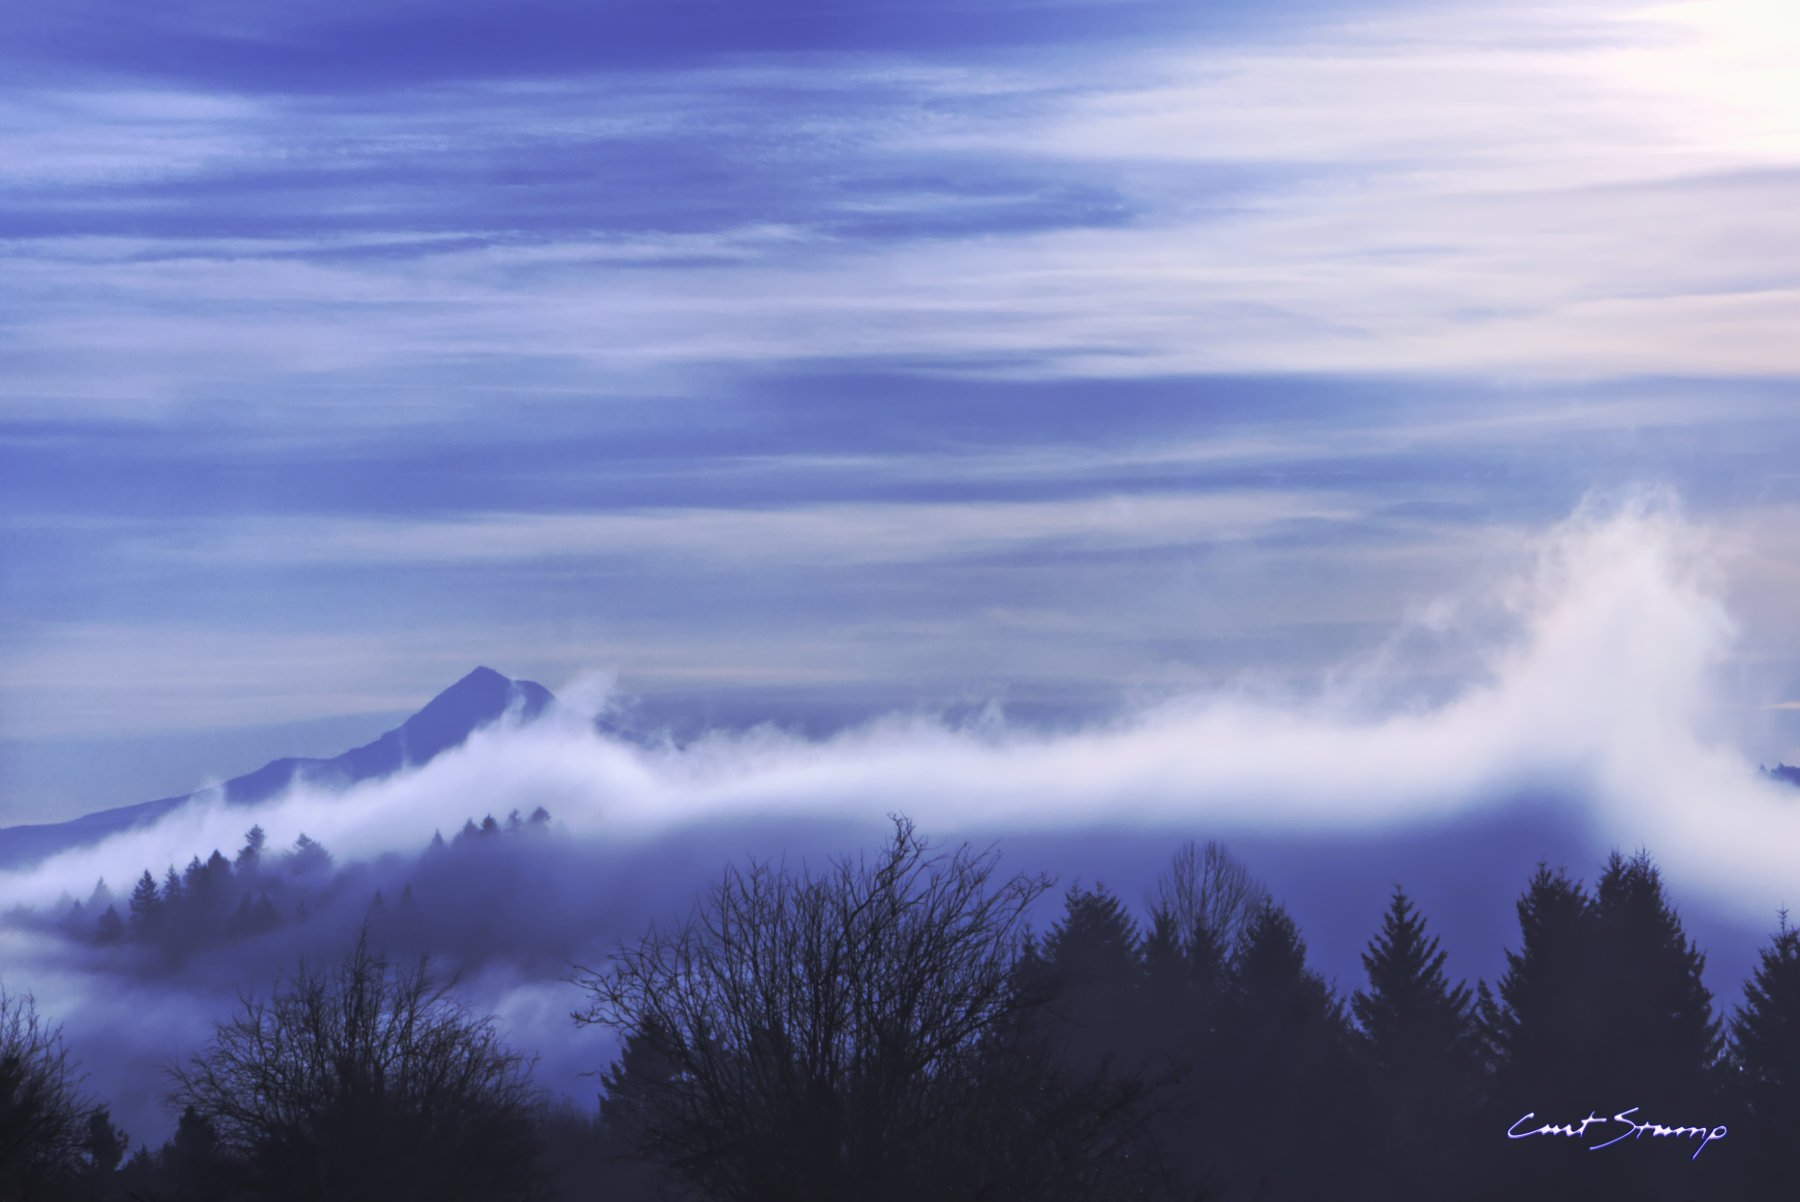 View of Mount Hood, Oregon, in the distance with fog in foreground with trees. Streaked clouds and blue sky.